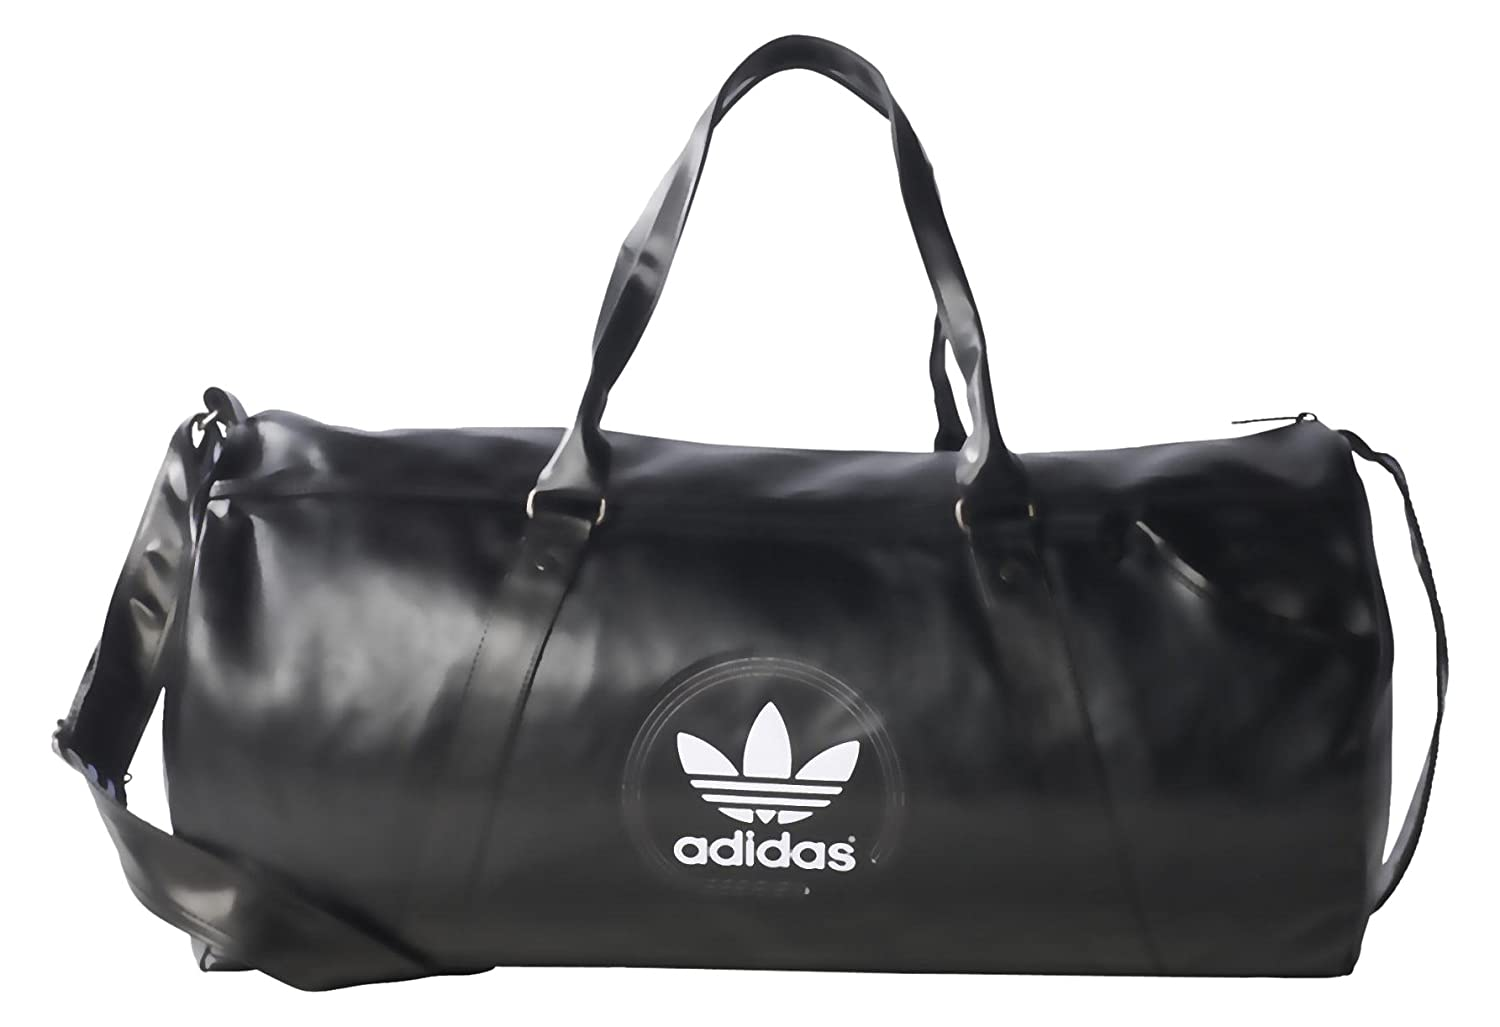 cc525e503fe6 adidas Originals Men s Duffel Perforated Gym Bag  Amazon.ca  Luggage   Bags